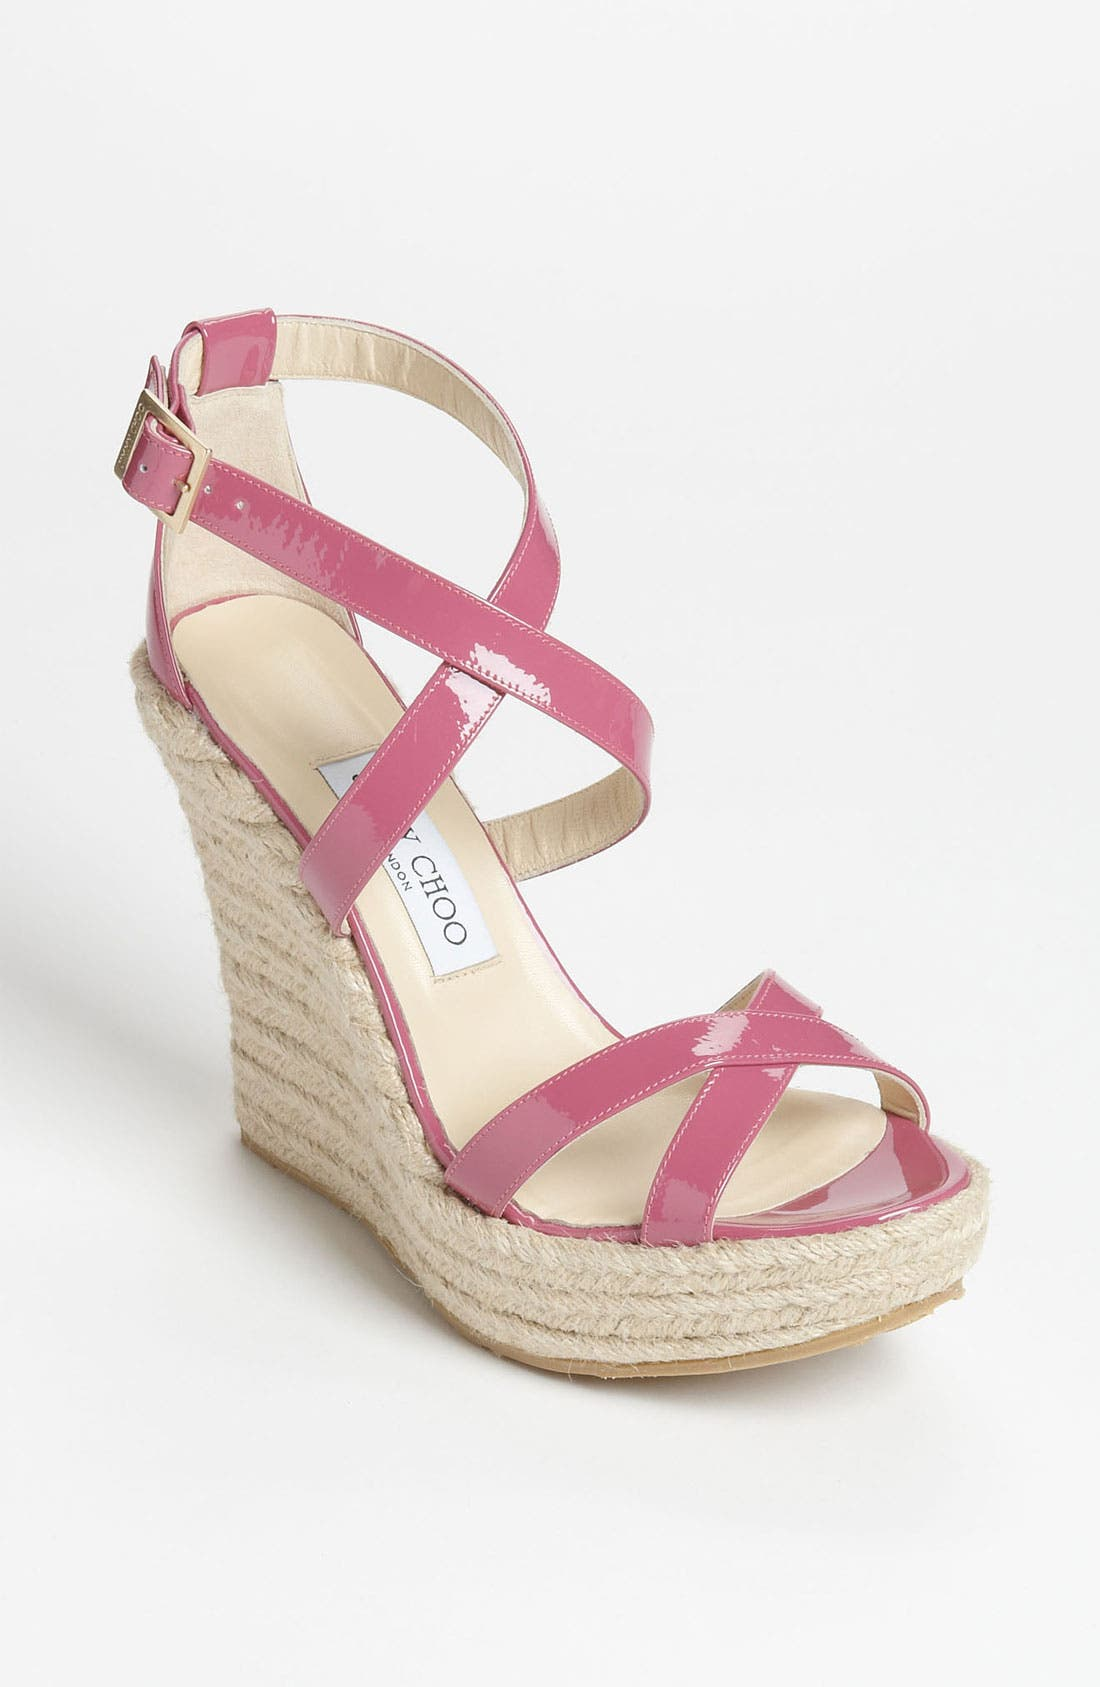 Alternate Image 1 Selected - Jimmy Choo 'Porto' Wedge Sandal